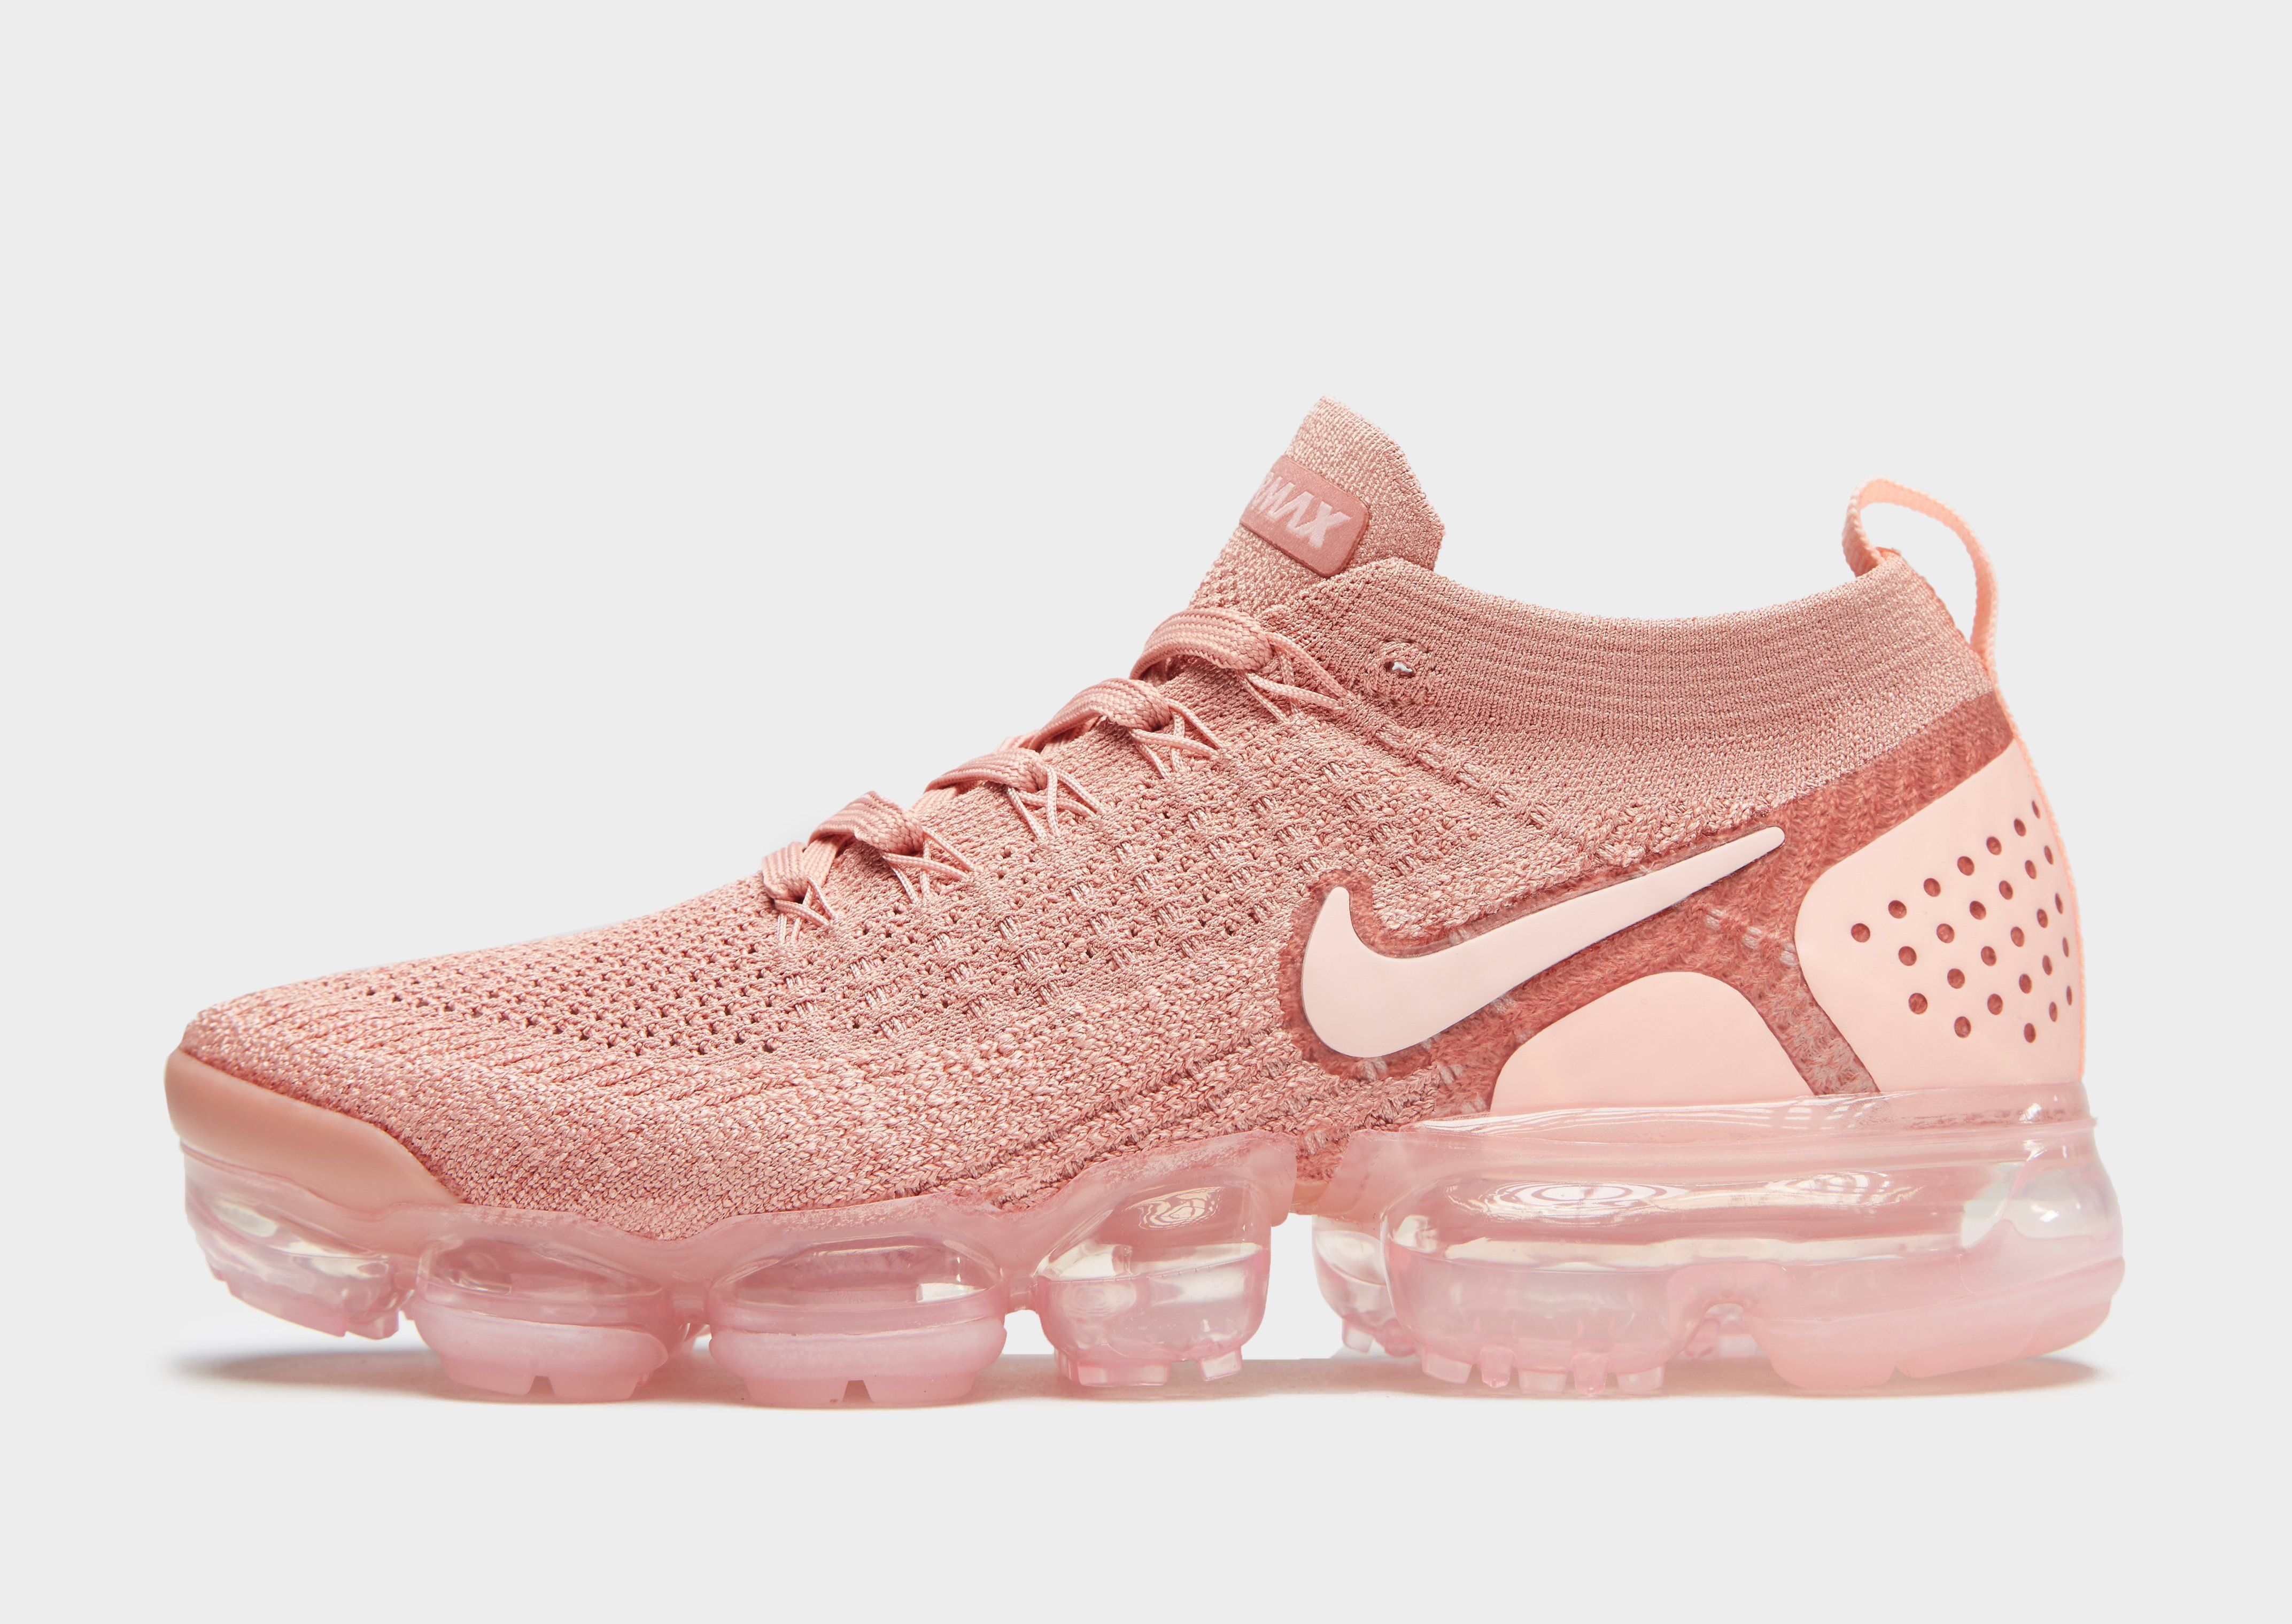 quality design d149e 7ff93 Nike Air VaporMax Flyknit 2 Women s - Shop online for Nike Air VaporMax  Flyknit 2 Women s with JD Sports, the UK s leading sports fashion retailer.